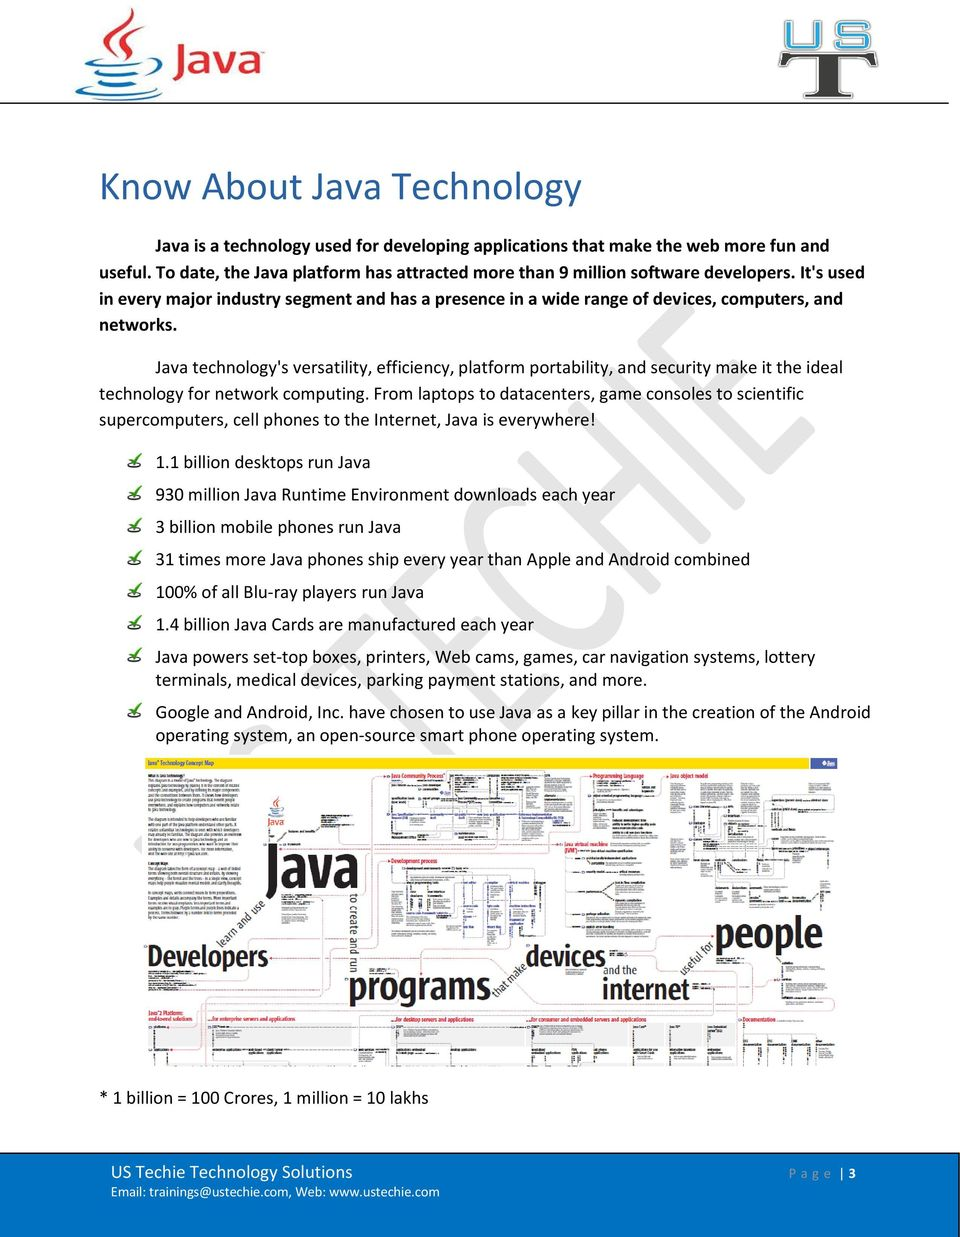 Java technology's versatility, efficiency, platform portability, and security make it the ideal technology for network computing.